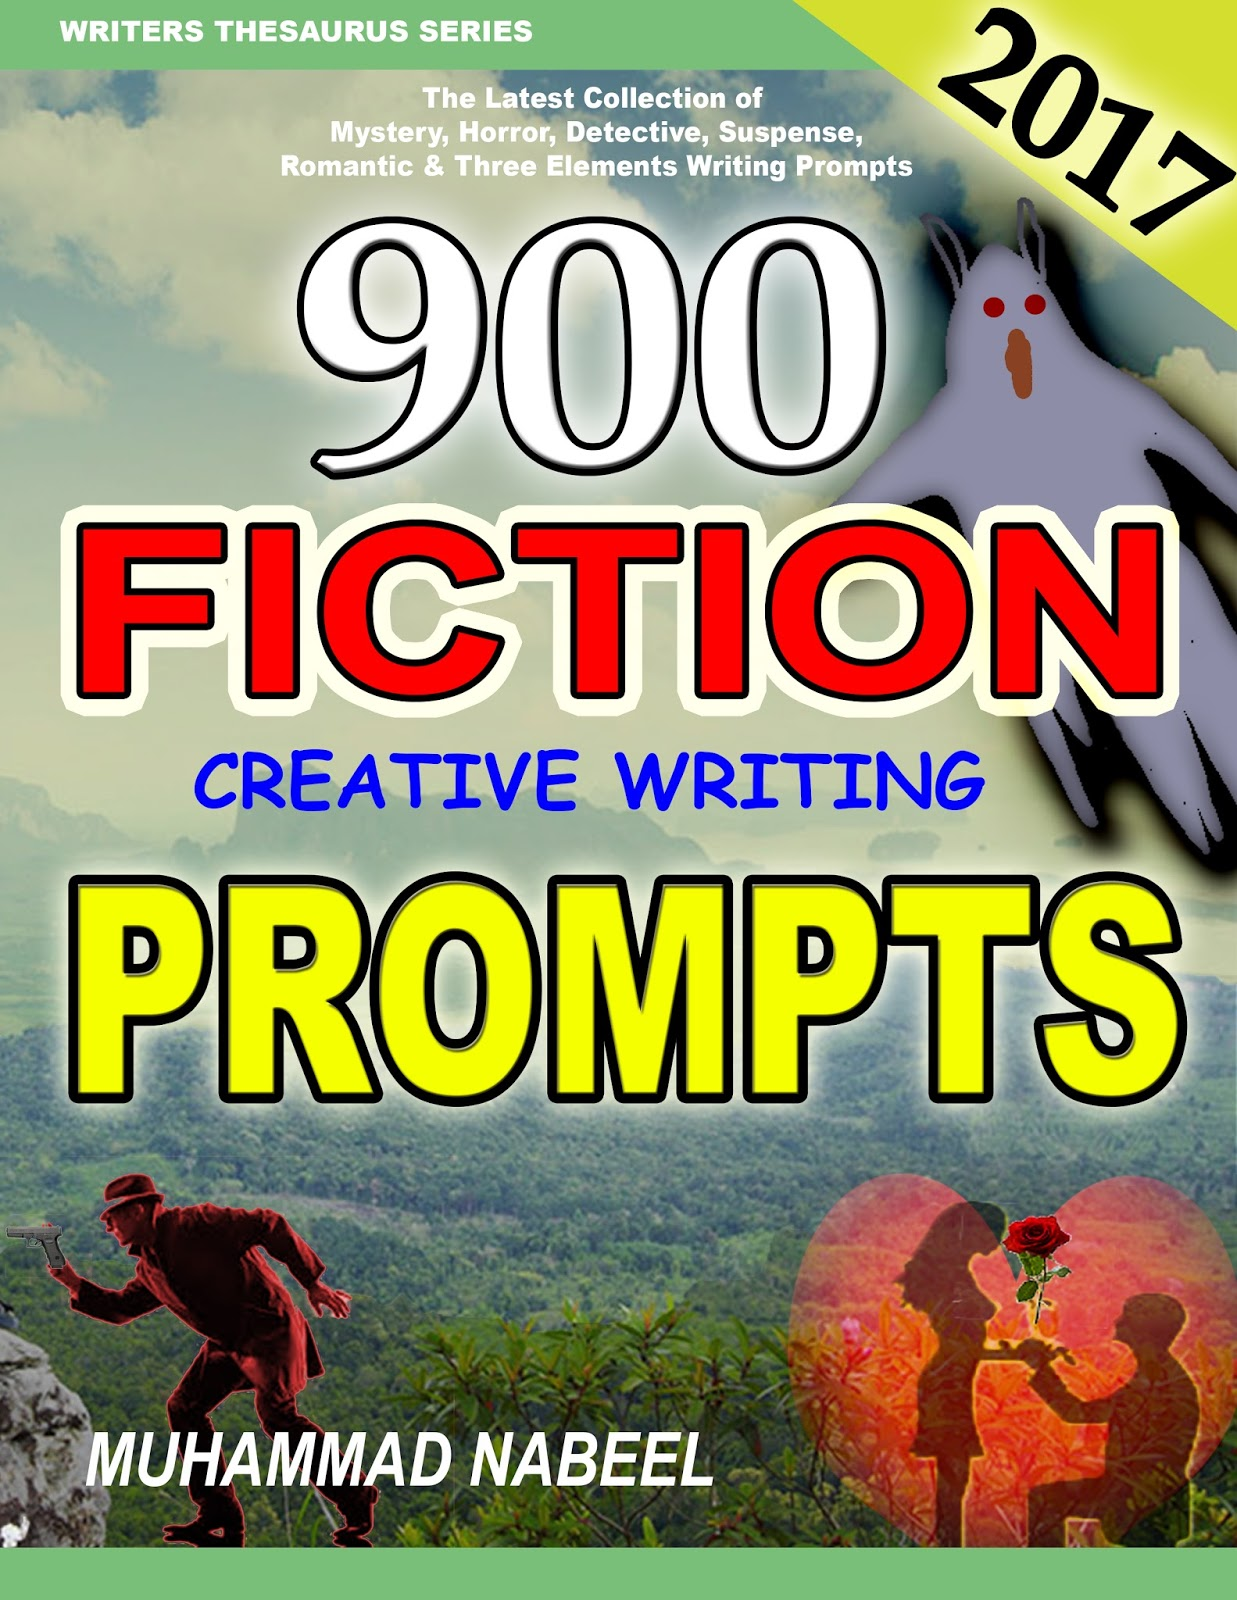 suspense writing prompts Find helpful customer reviews and review ratings for 100 mystery, thriller, and suspense writing prompts (fiction ideas vol 9) at amazoncom read honest and unbiased product reviews from our users.